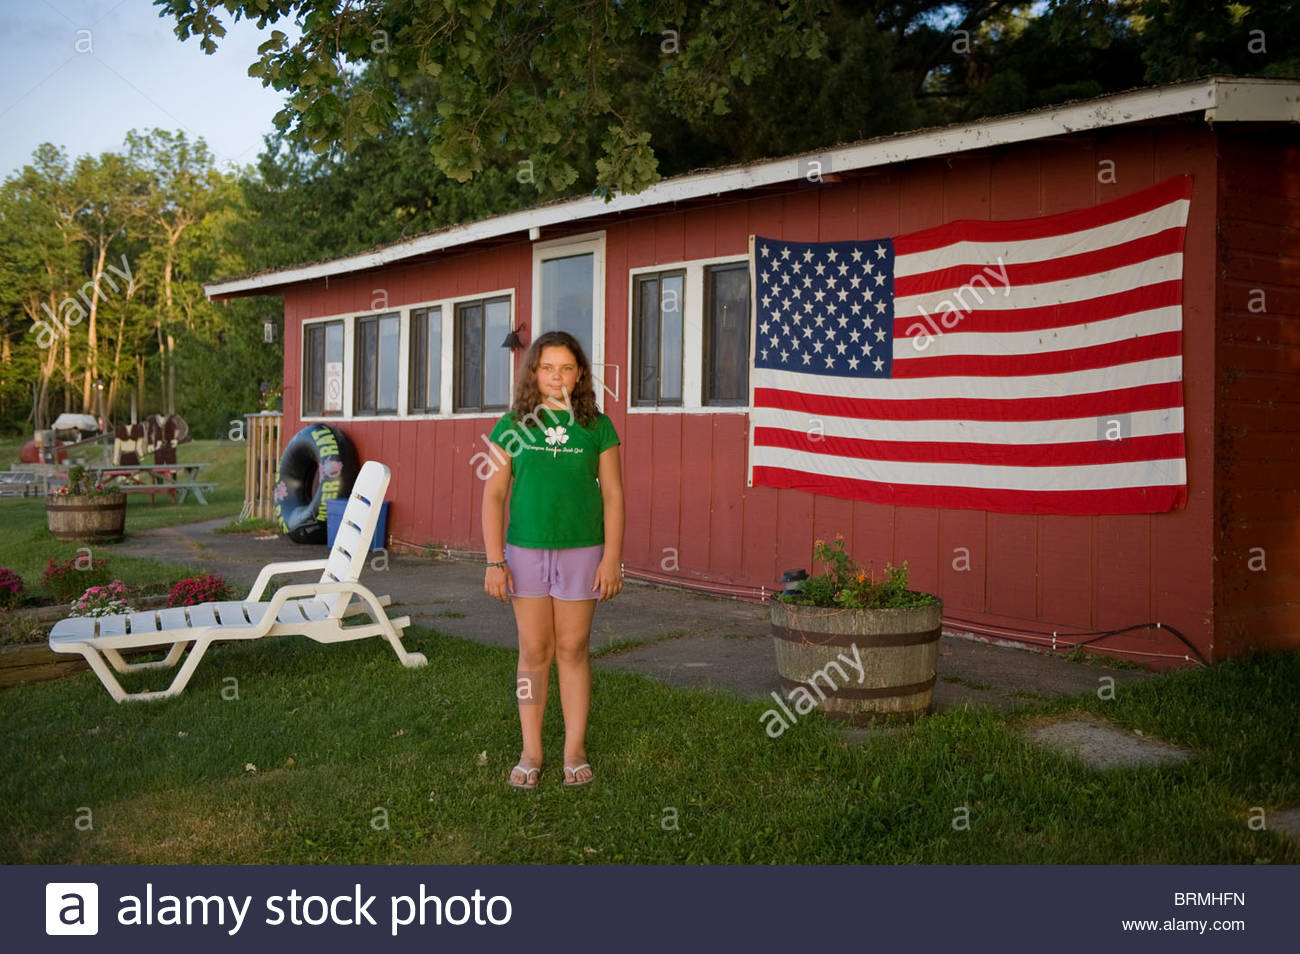 A girl vacations in Leech Lake, Minnesota - Stock Image